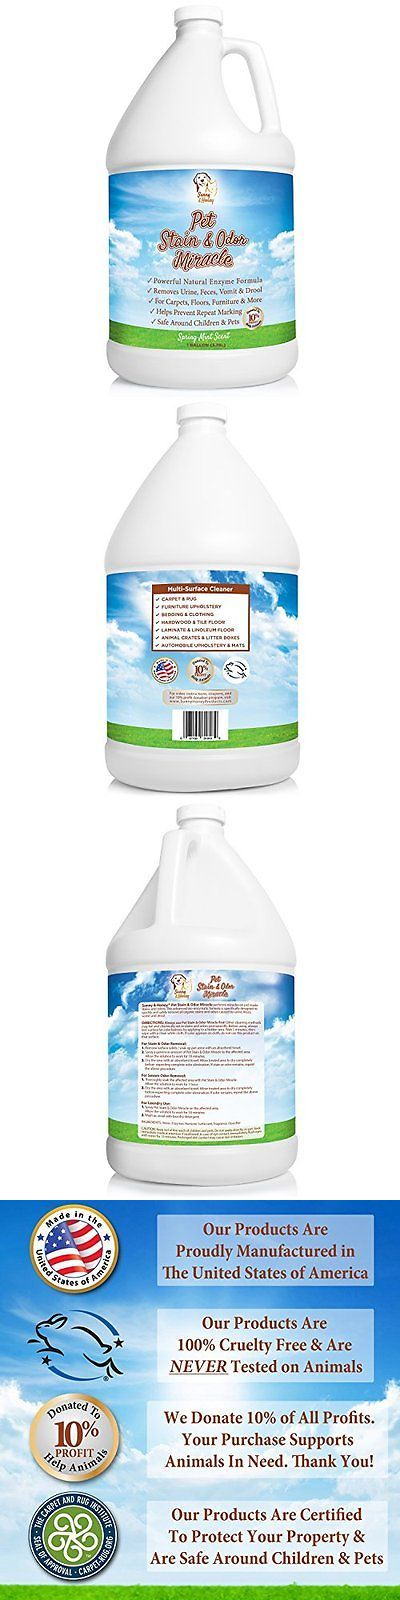 Odor and Stain Removal 134755: Pet Stain Odor Remover Cleaner Eliminator Carpet Neutralizer Cat Urine Smell -> BUY IT NOW ONLY: $62.86 on eBay!